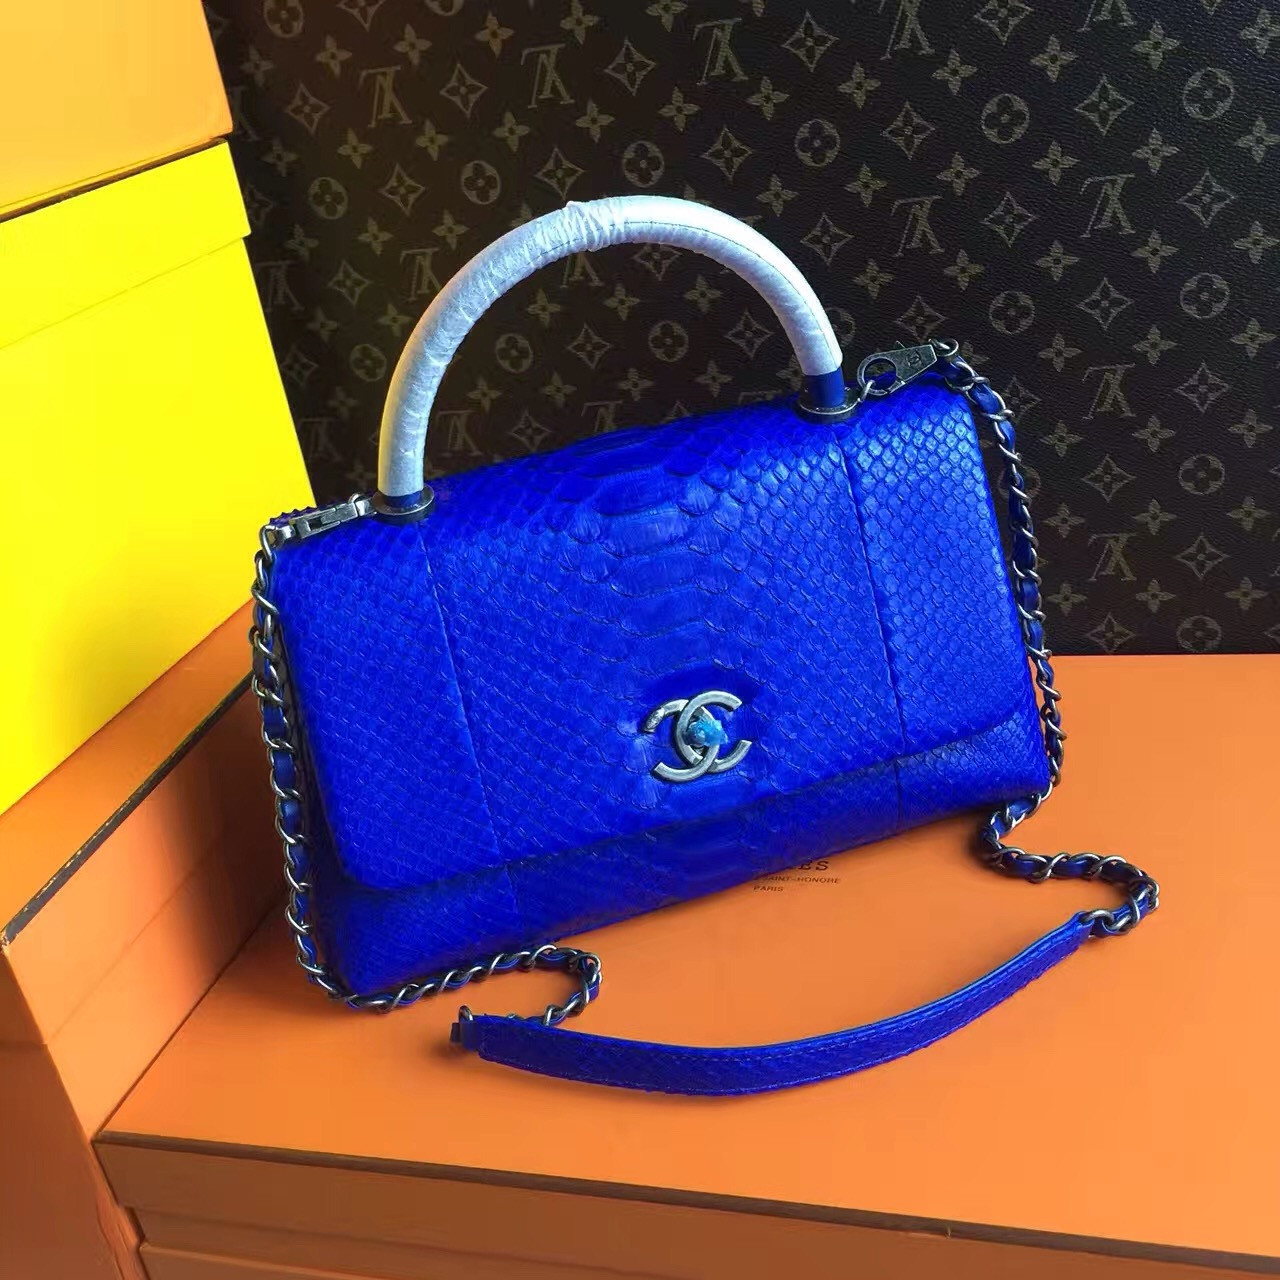 1c44bc5f956c Chanel Electric Blue Python Lizard Top Handle Coco Handle Small Bag ...